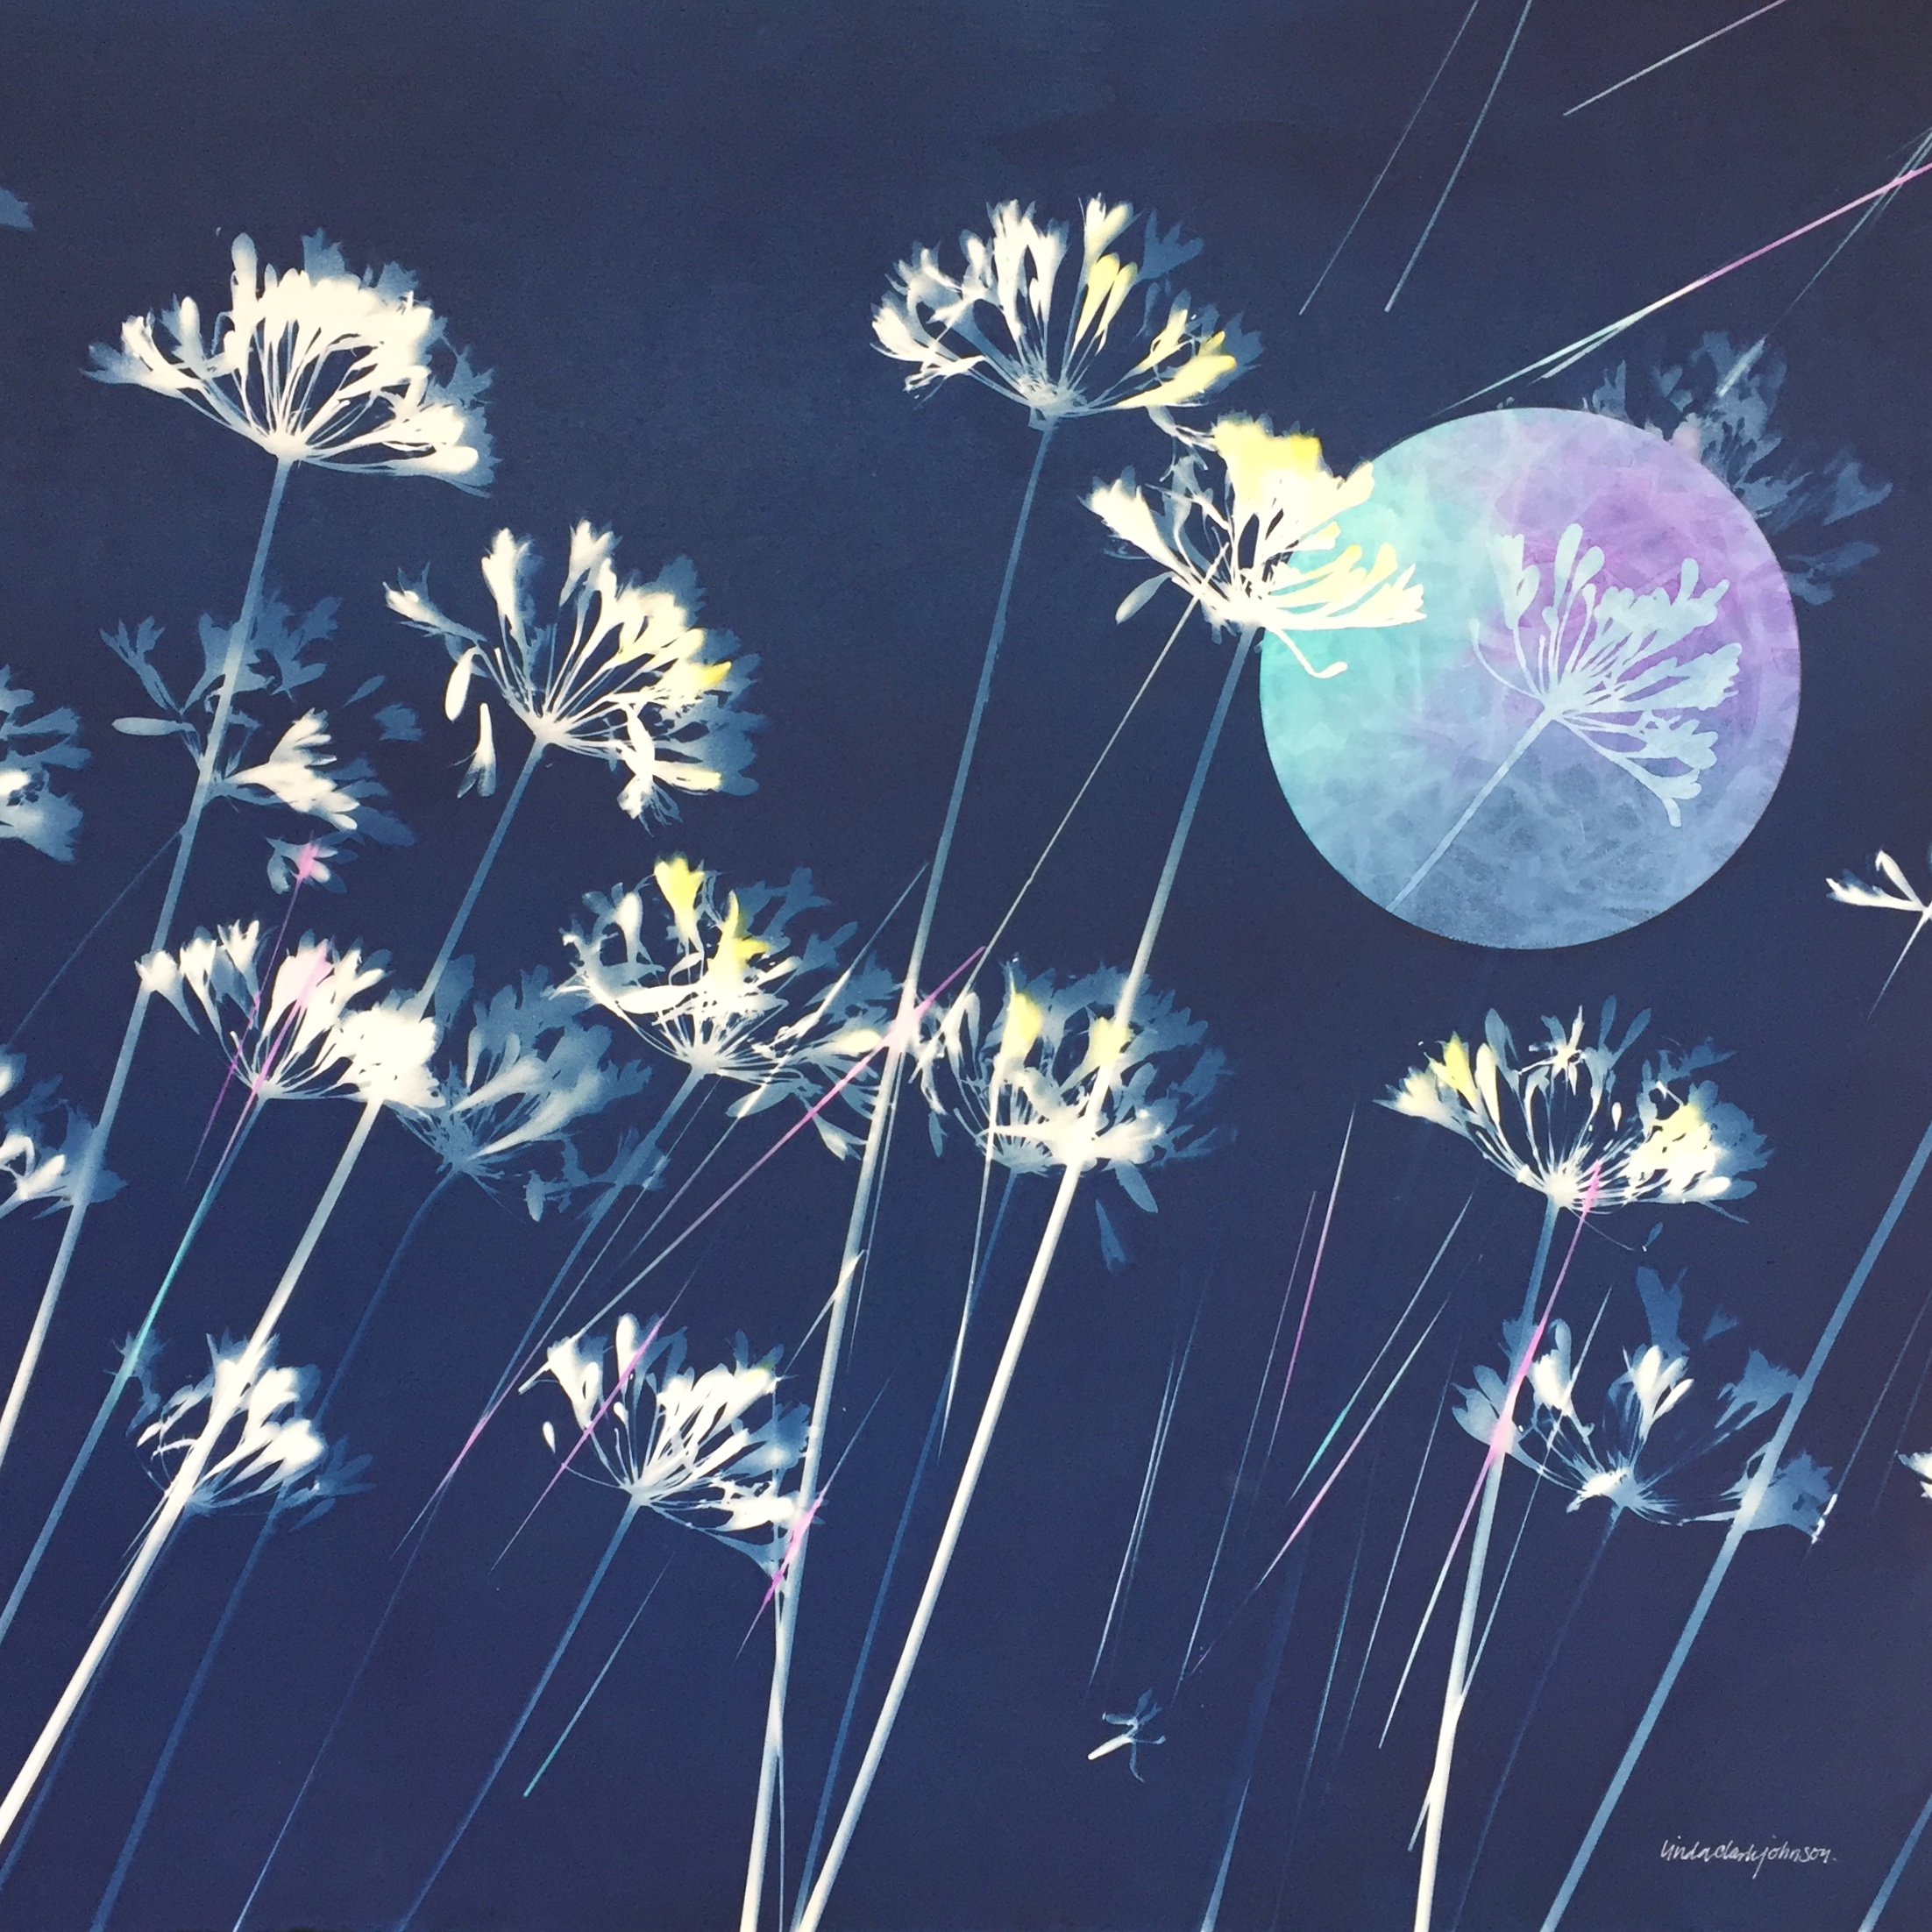 Moonbeams  | 29.5 x 29.5 | framed cyanotype and watercolor | $800